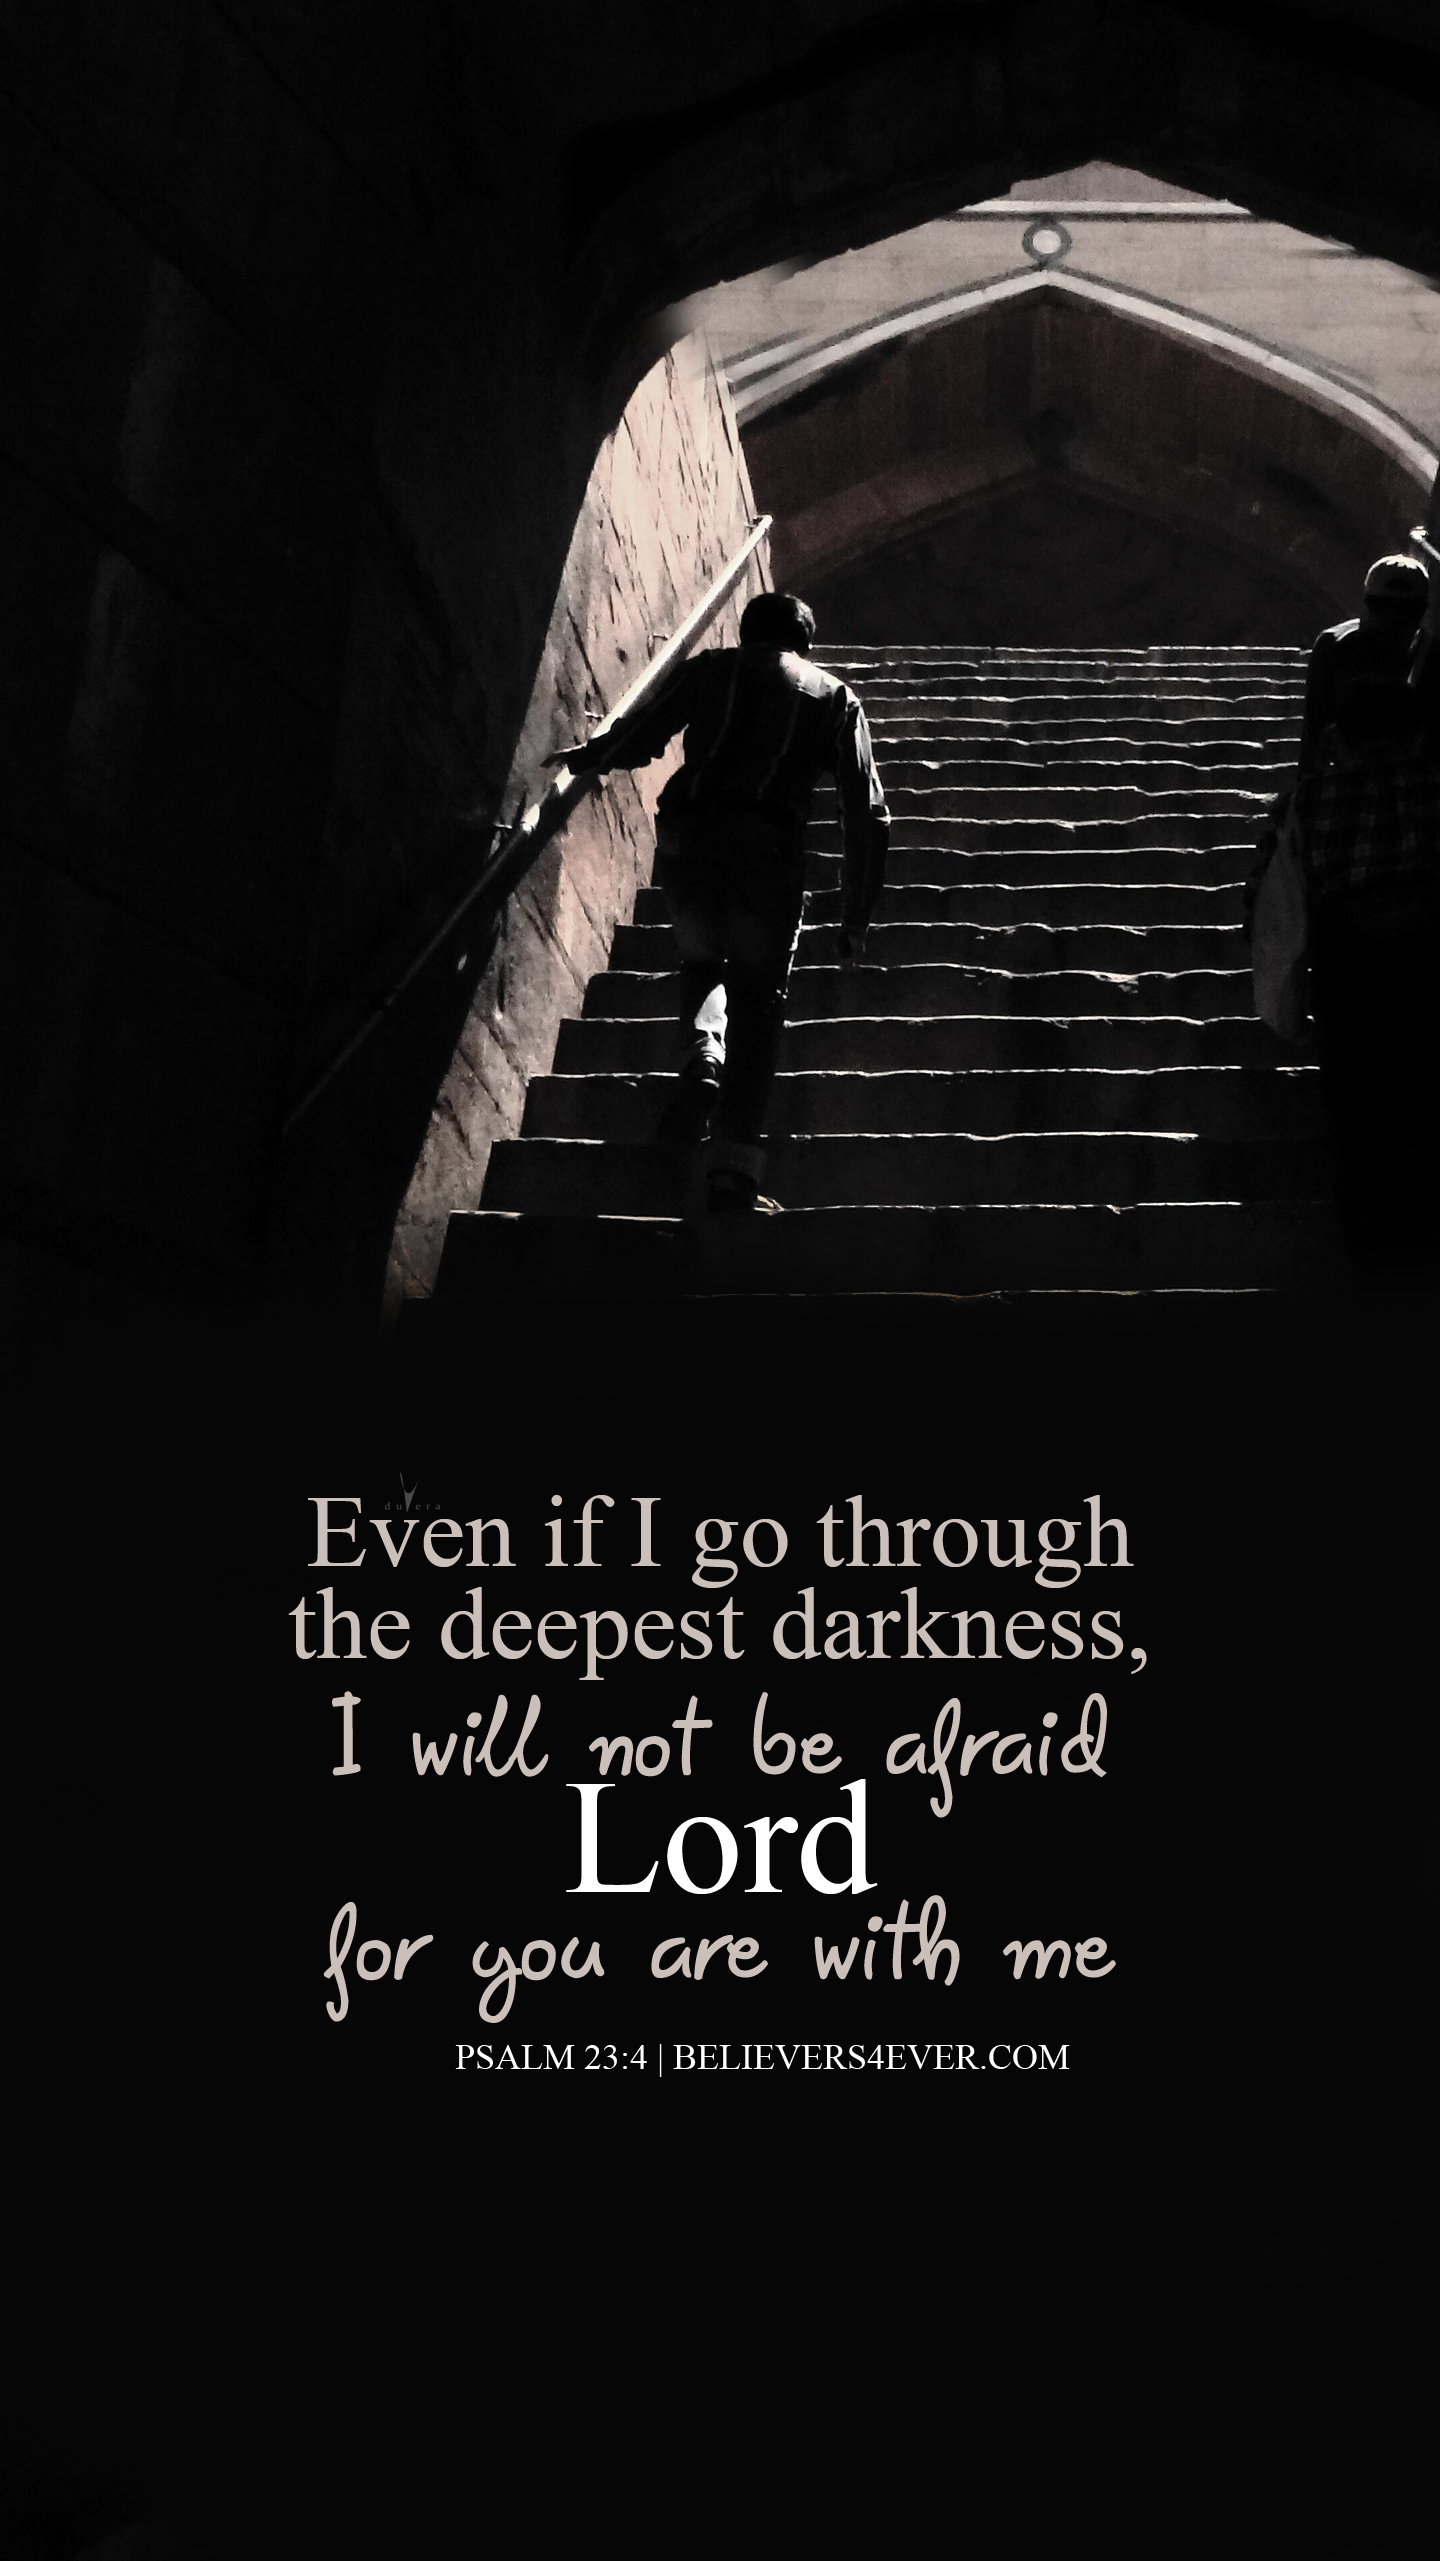 The deepest darkness Psalm 23:4